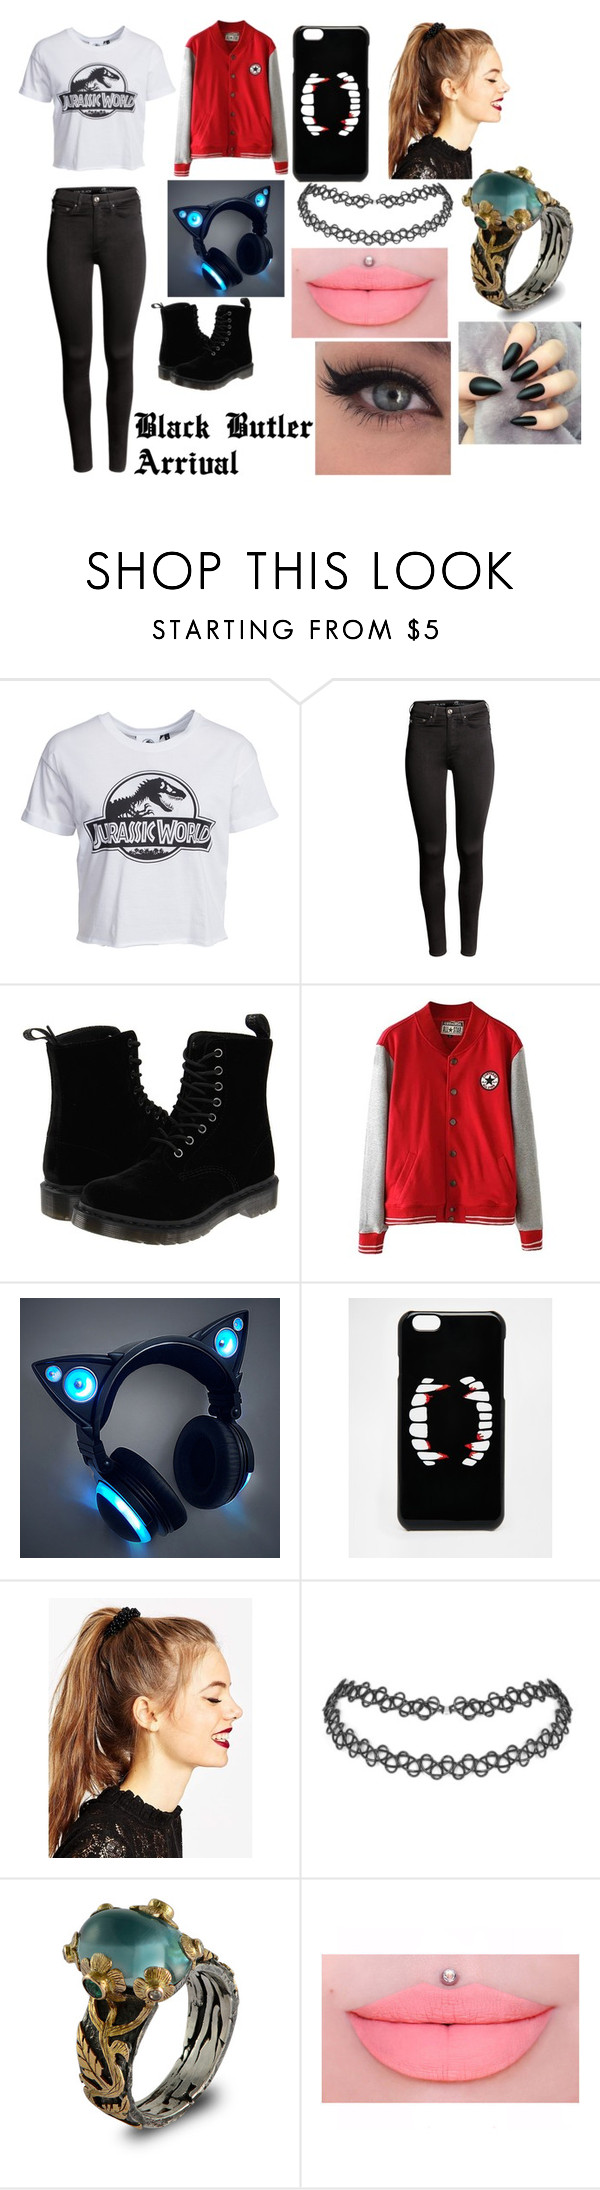 """Untitled #19"" by erementaruartist on Polyvore featuring New Look, H&M, Dr. Martens, ASOS and Emma Chapman"